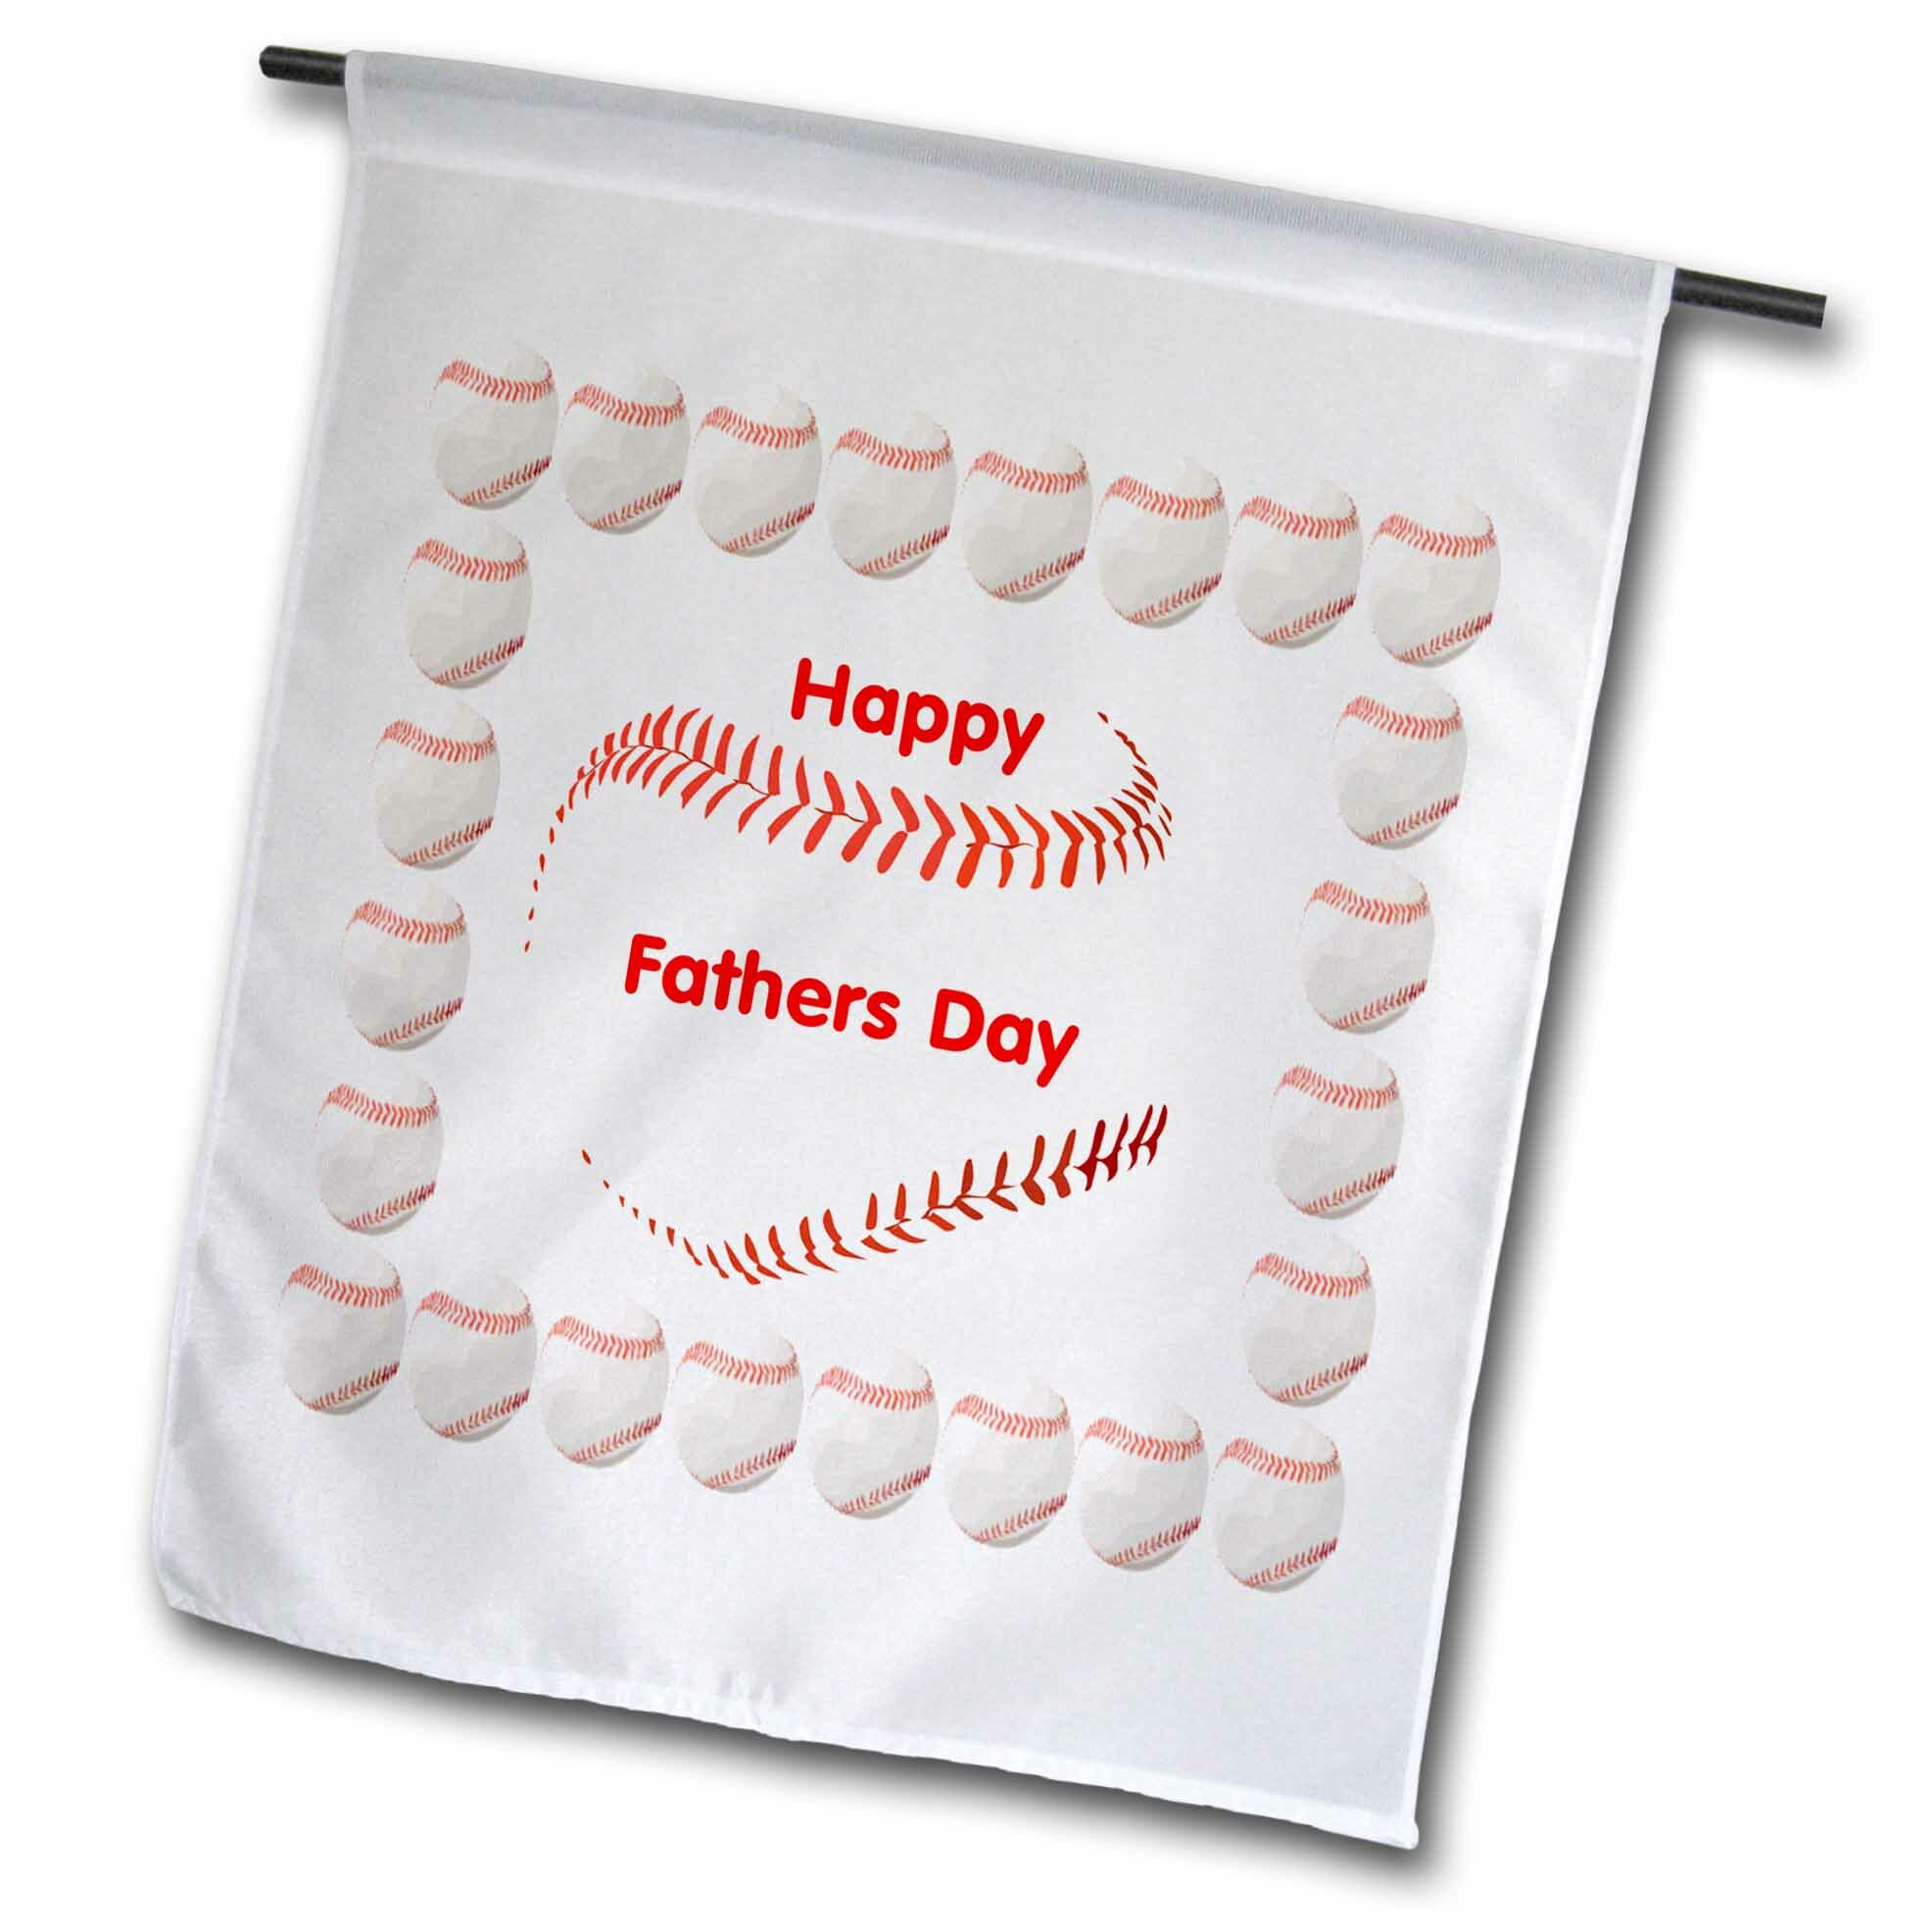 3drose Giant Baseball Says Happy Fathers Day Polyester 18 X 12 In Garden Flag Wayfair